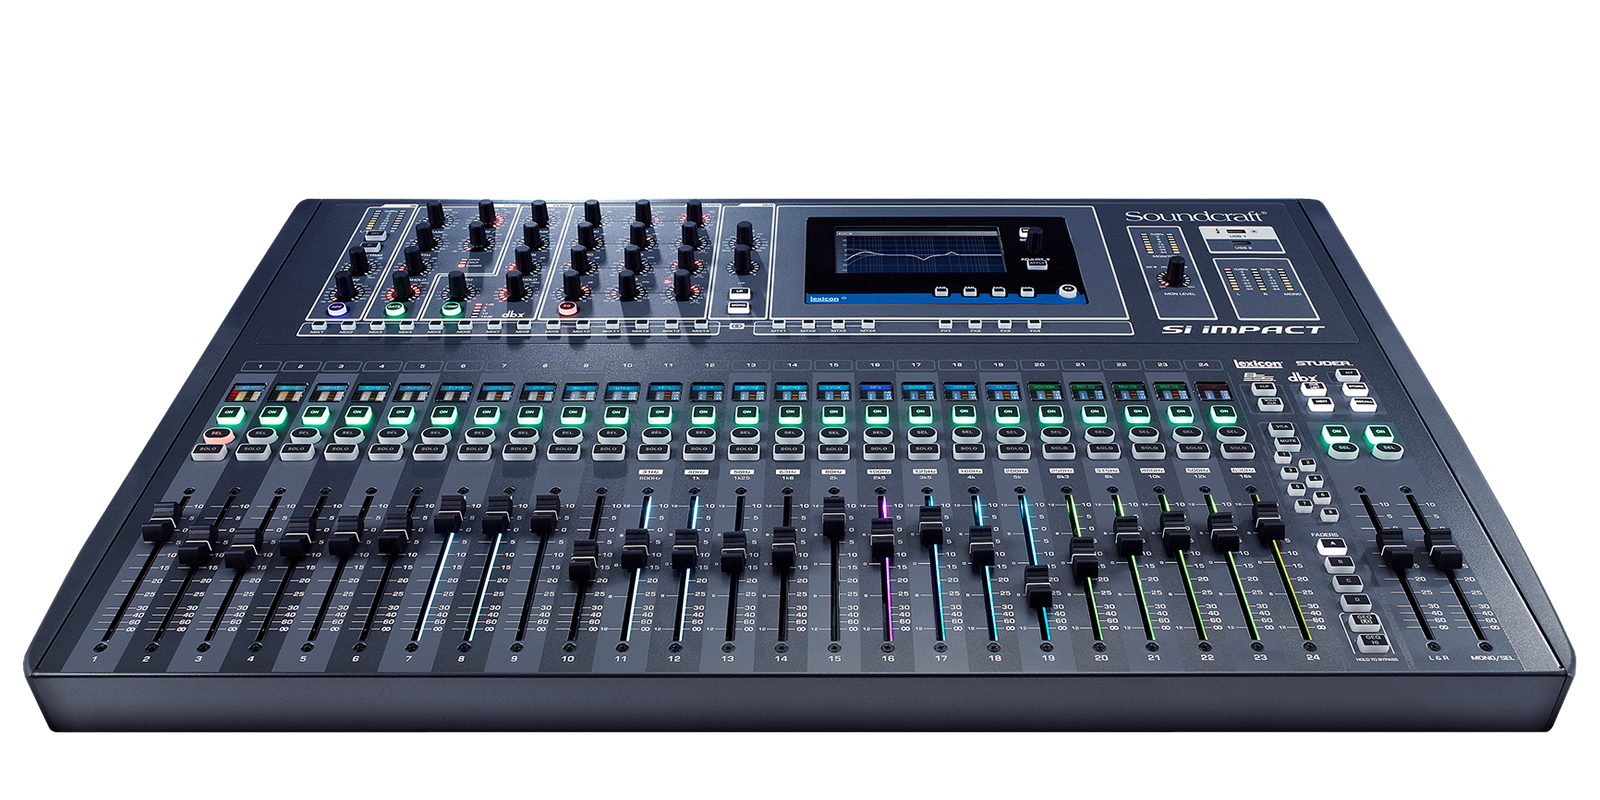 Soundcraft Si Impact 40i/p Digital Mixing Console 32in/32out USB Cntrl Image